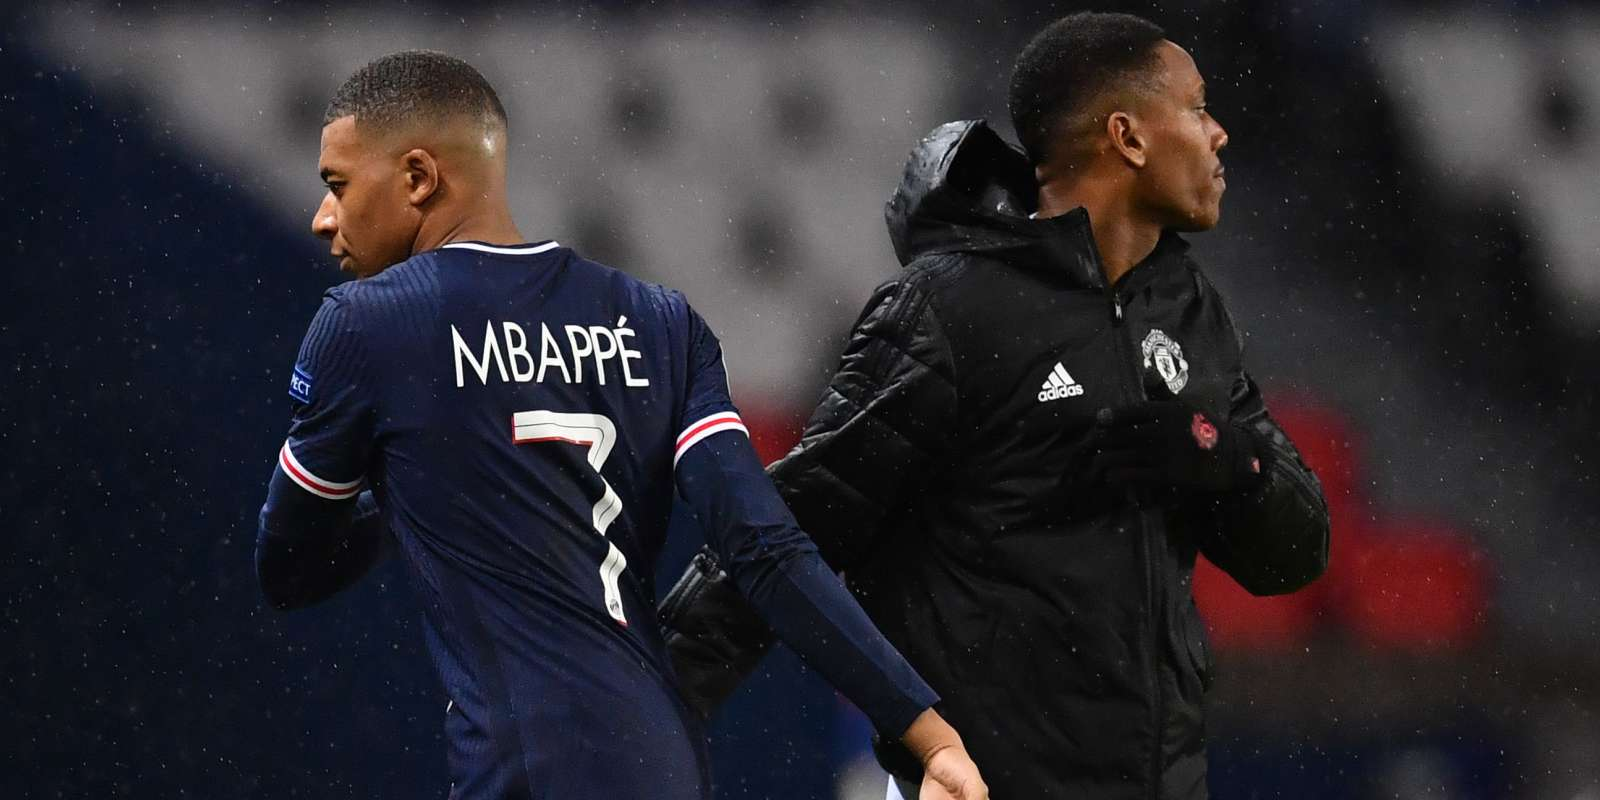 Paris Saint-Germain's French forward Kylian Mbappe (R) shakes hands with Manchester United's French forward Anthony Martial after the during the UEFA Europa League Group H first-leg football match between Paris Saint-Germain (PSG) and Manchester United at the Parc des Princes stadium in Paris on October 20, 2020. / AFP / FRANCK FIFE